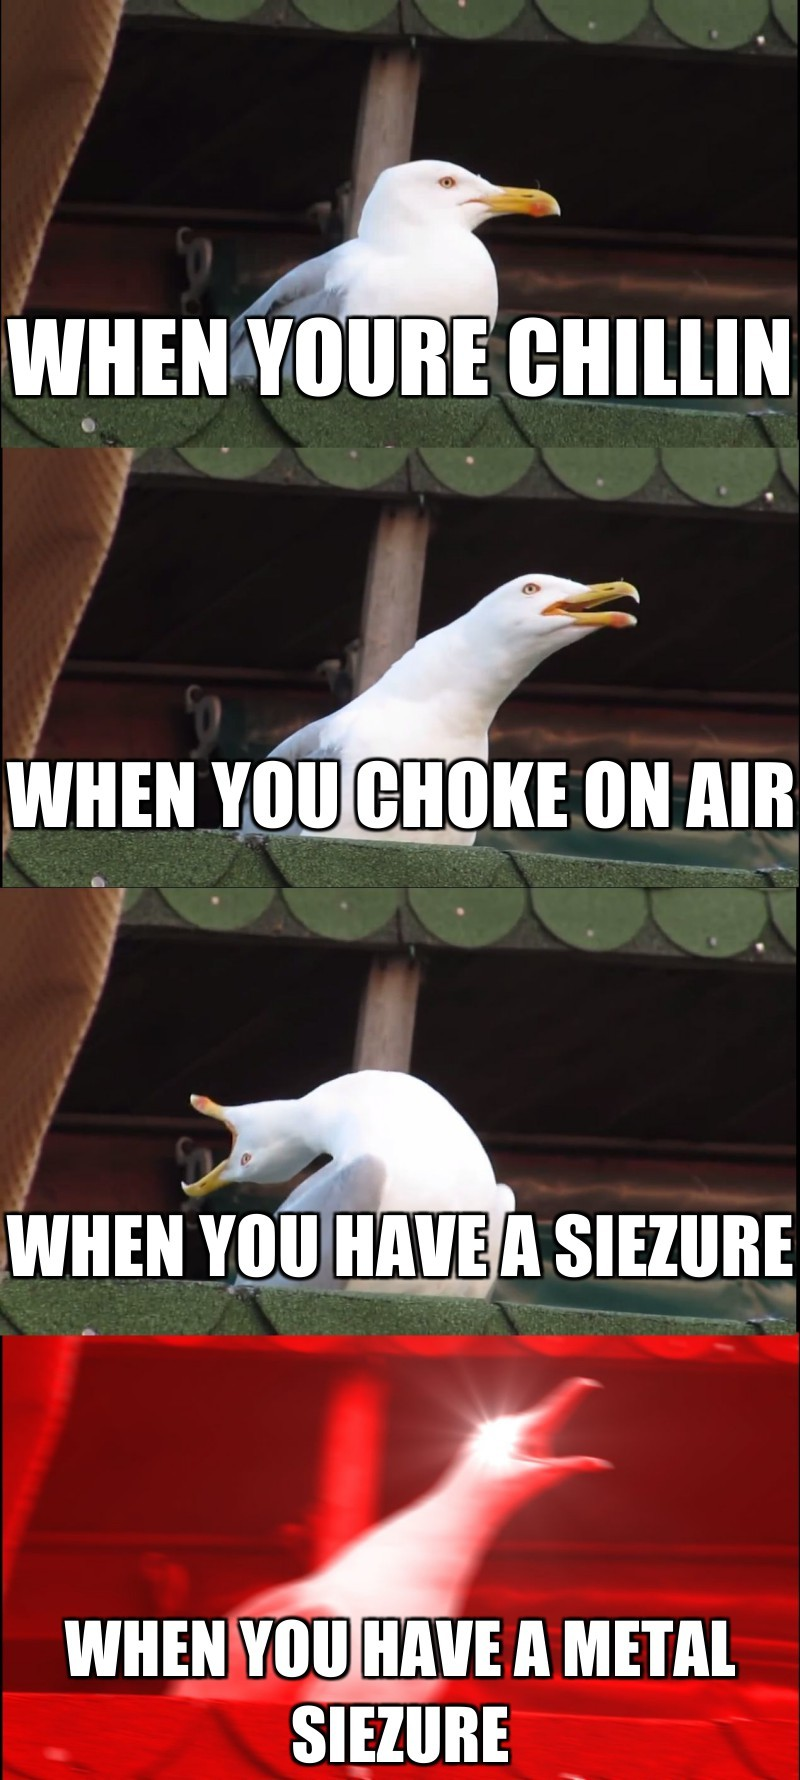 When you have a metal siezure; When youre chillin; When you choke on air; When you have a siezure